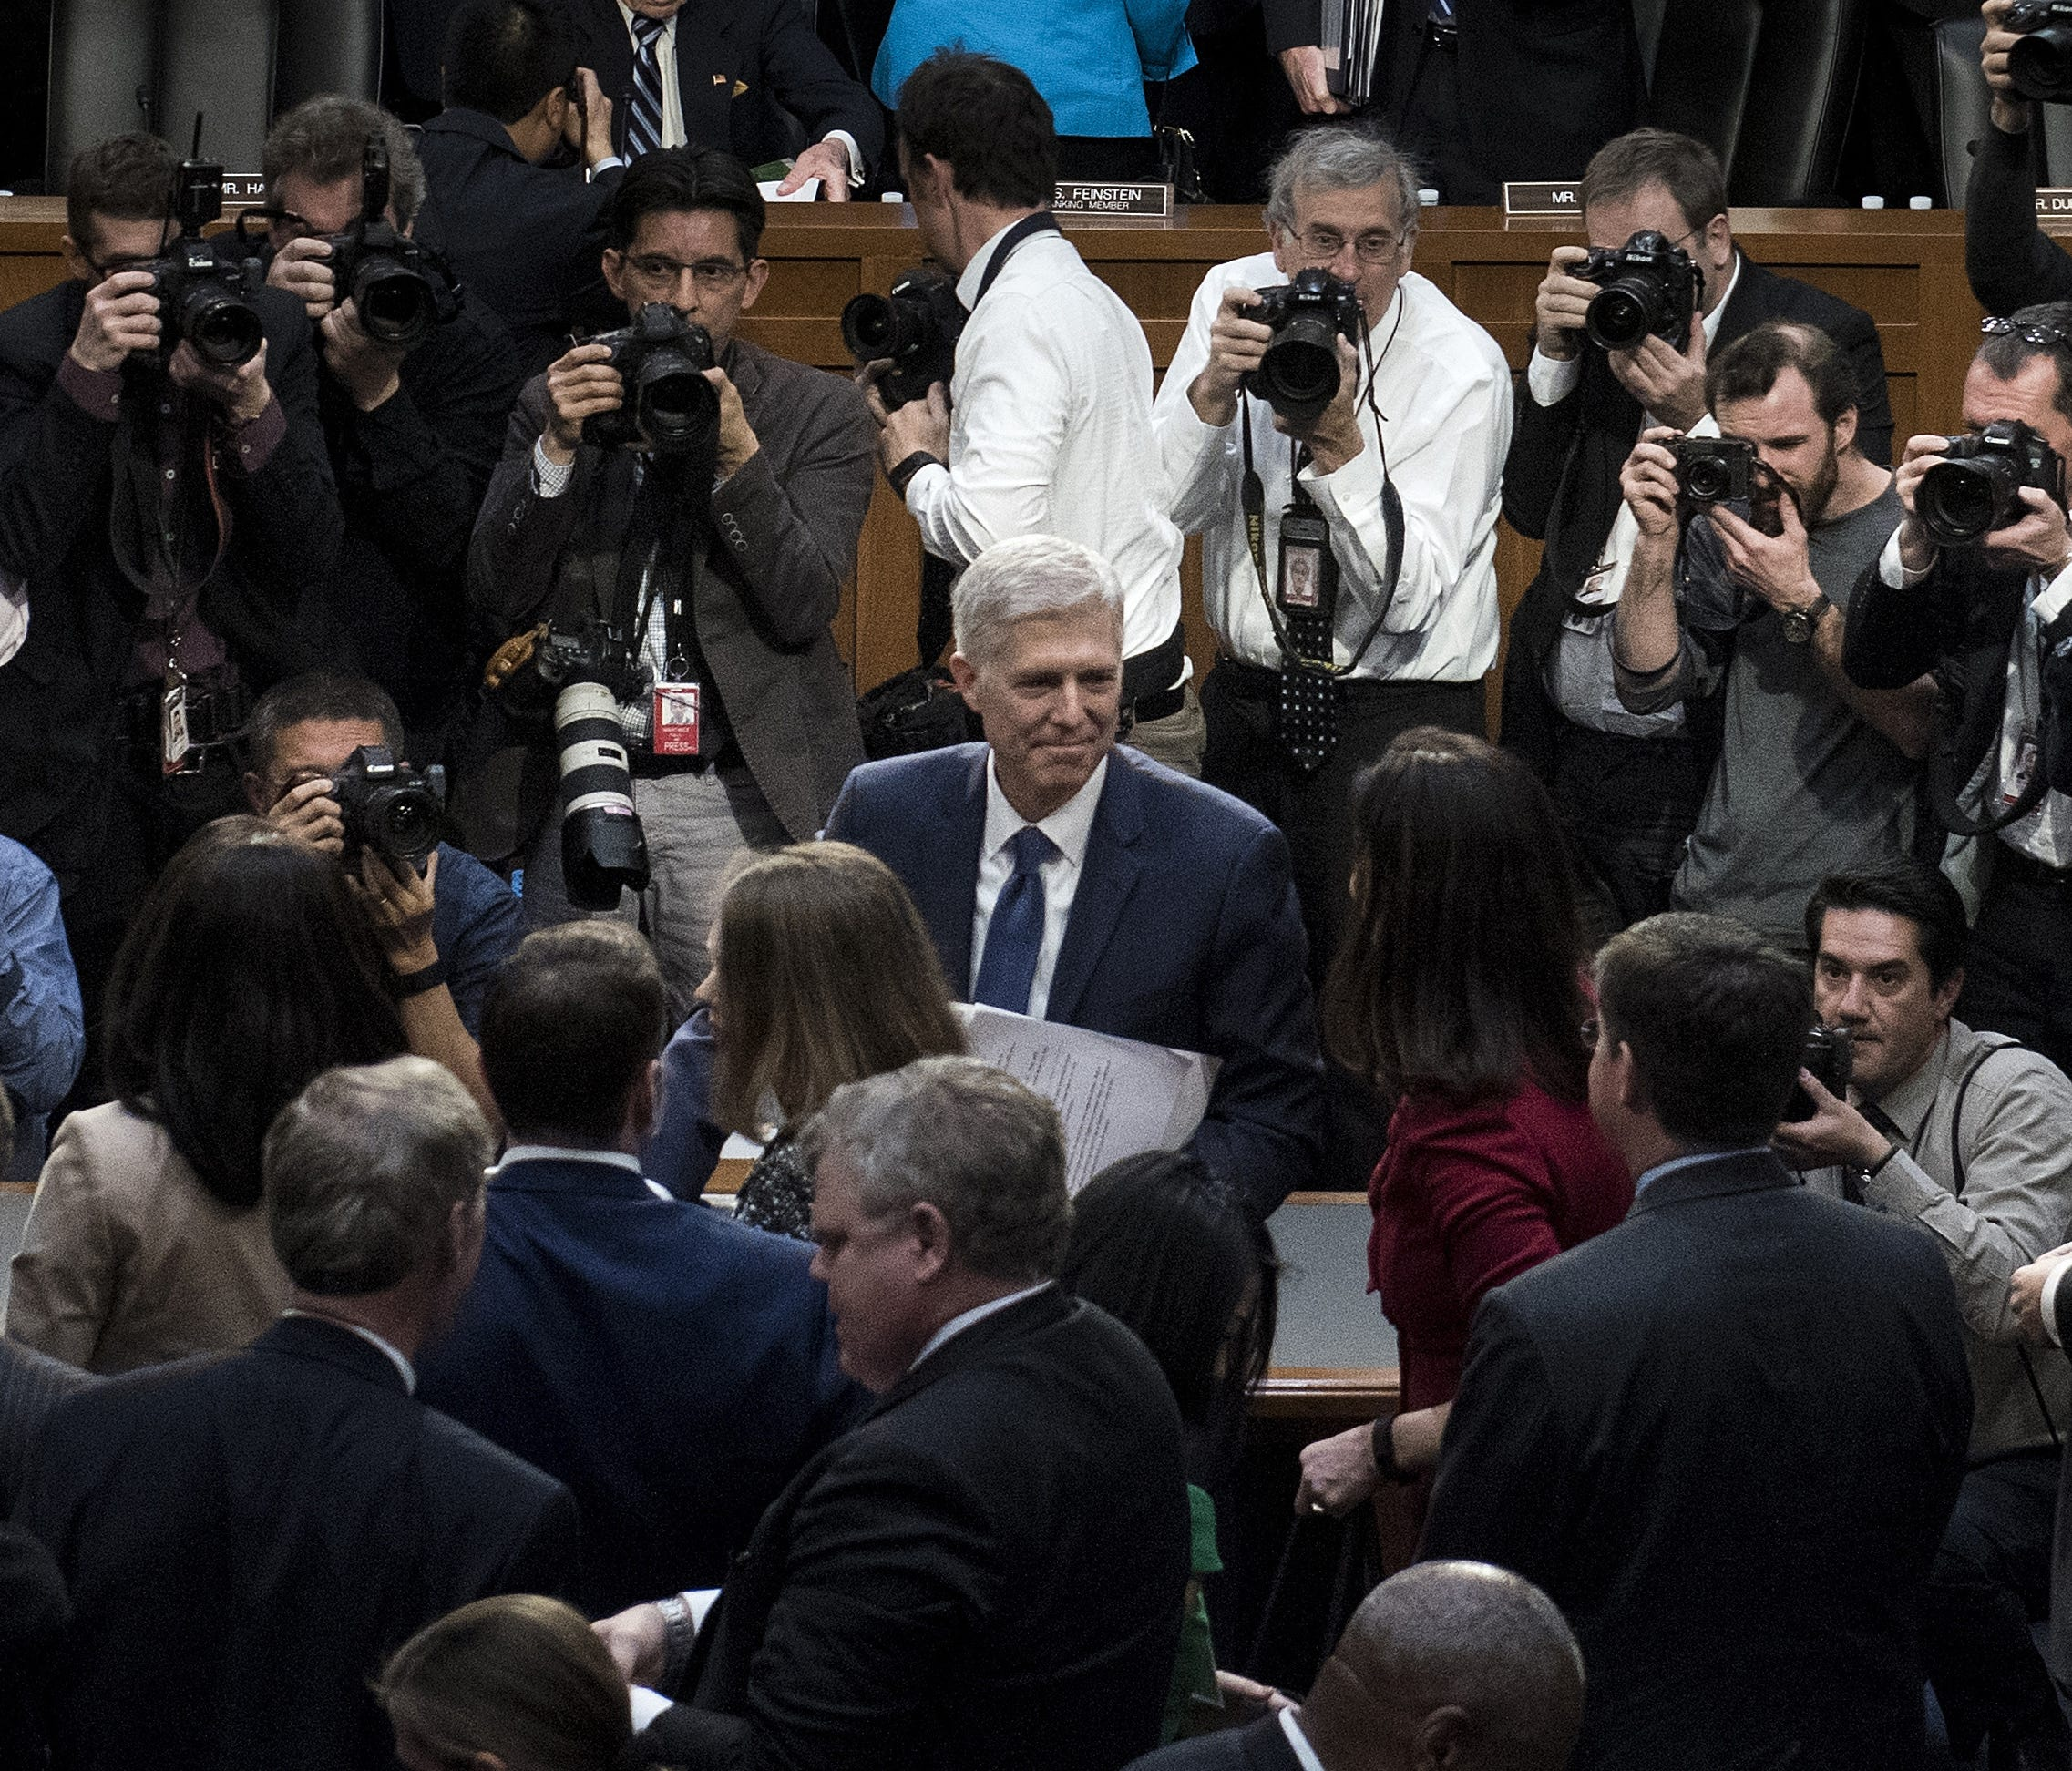 Supreme Court nominee Neil Gorsuch leaves a Senate hearing room on March 20, 2017, after the first day of his confirmation hearing for a seat on the Supreme Court.